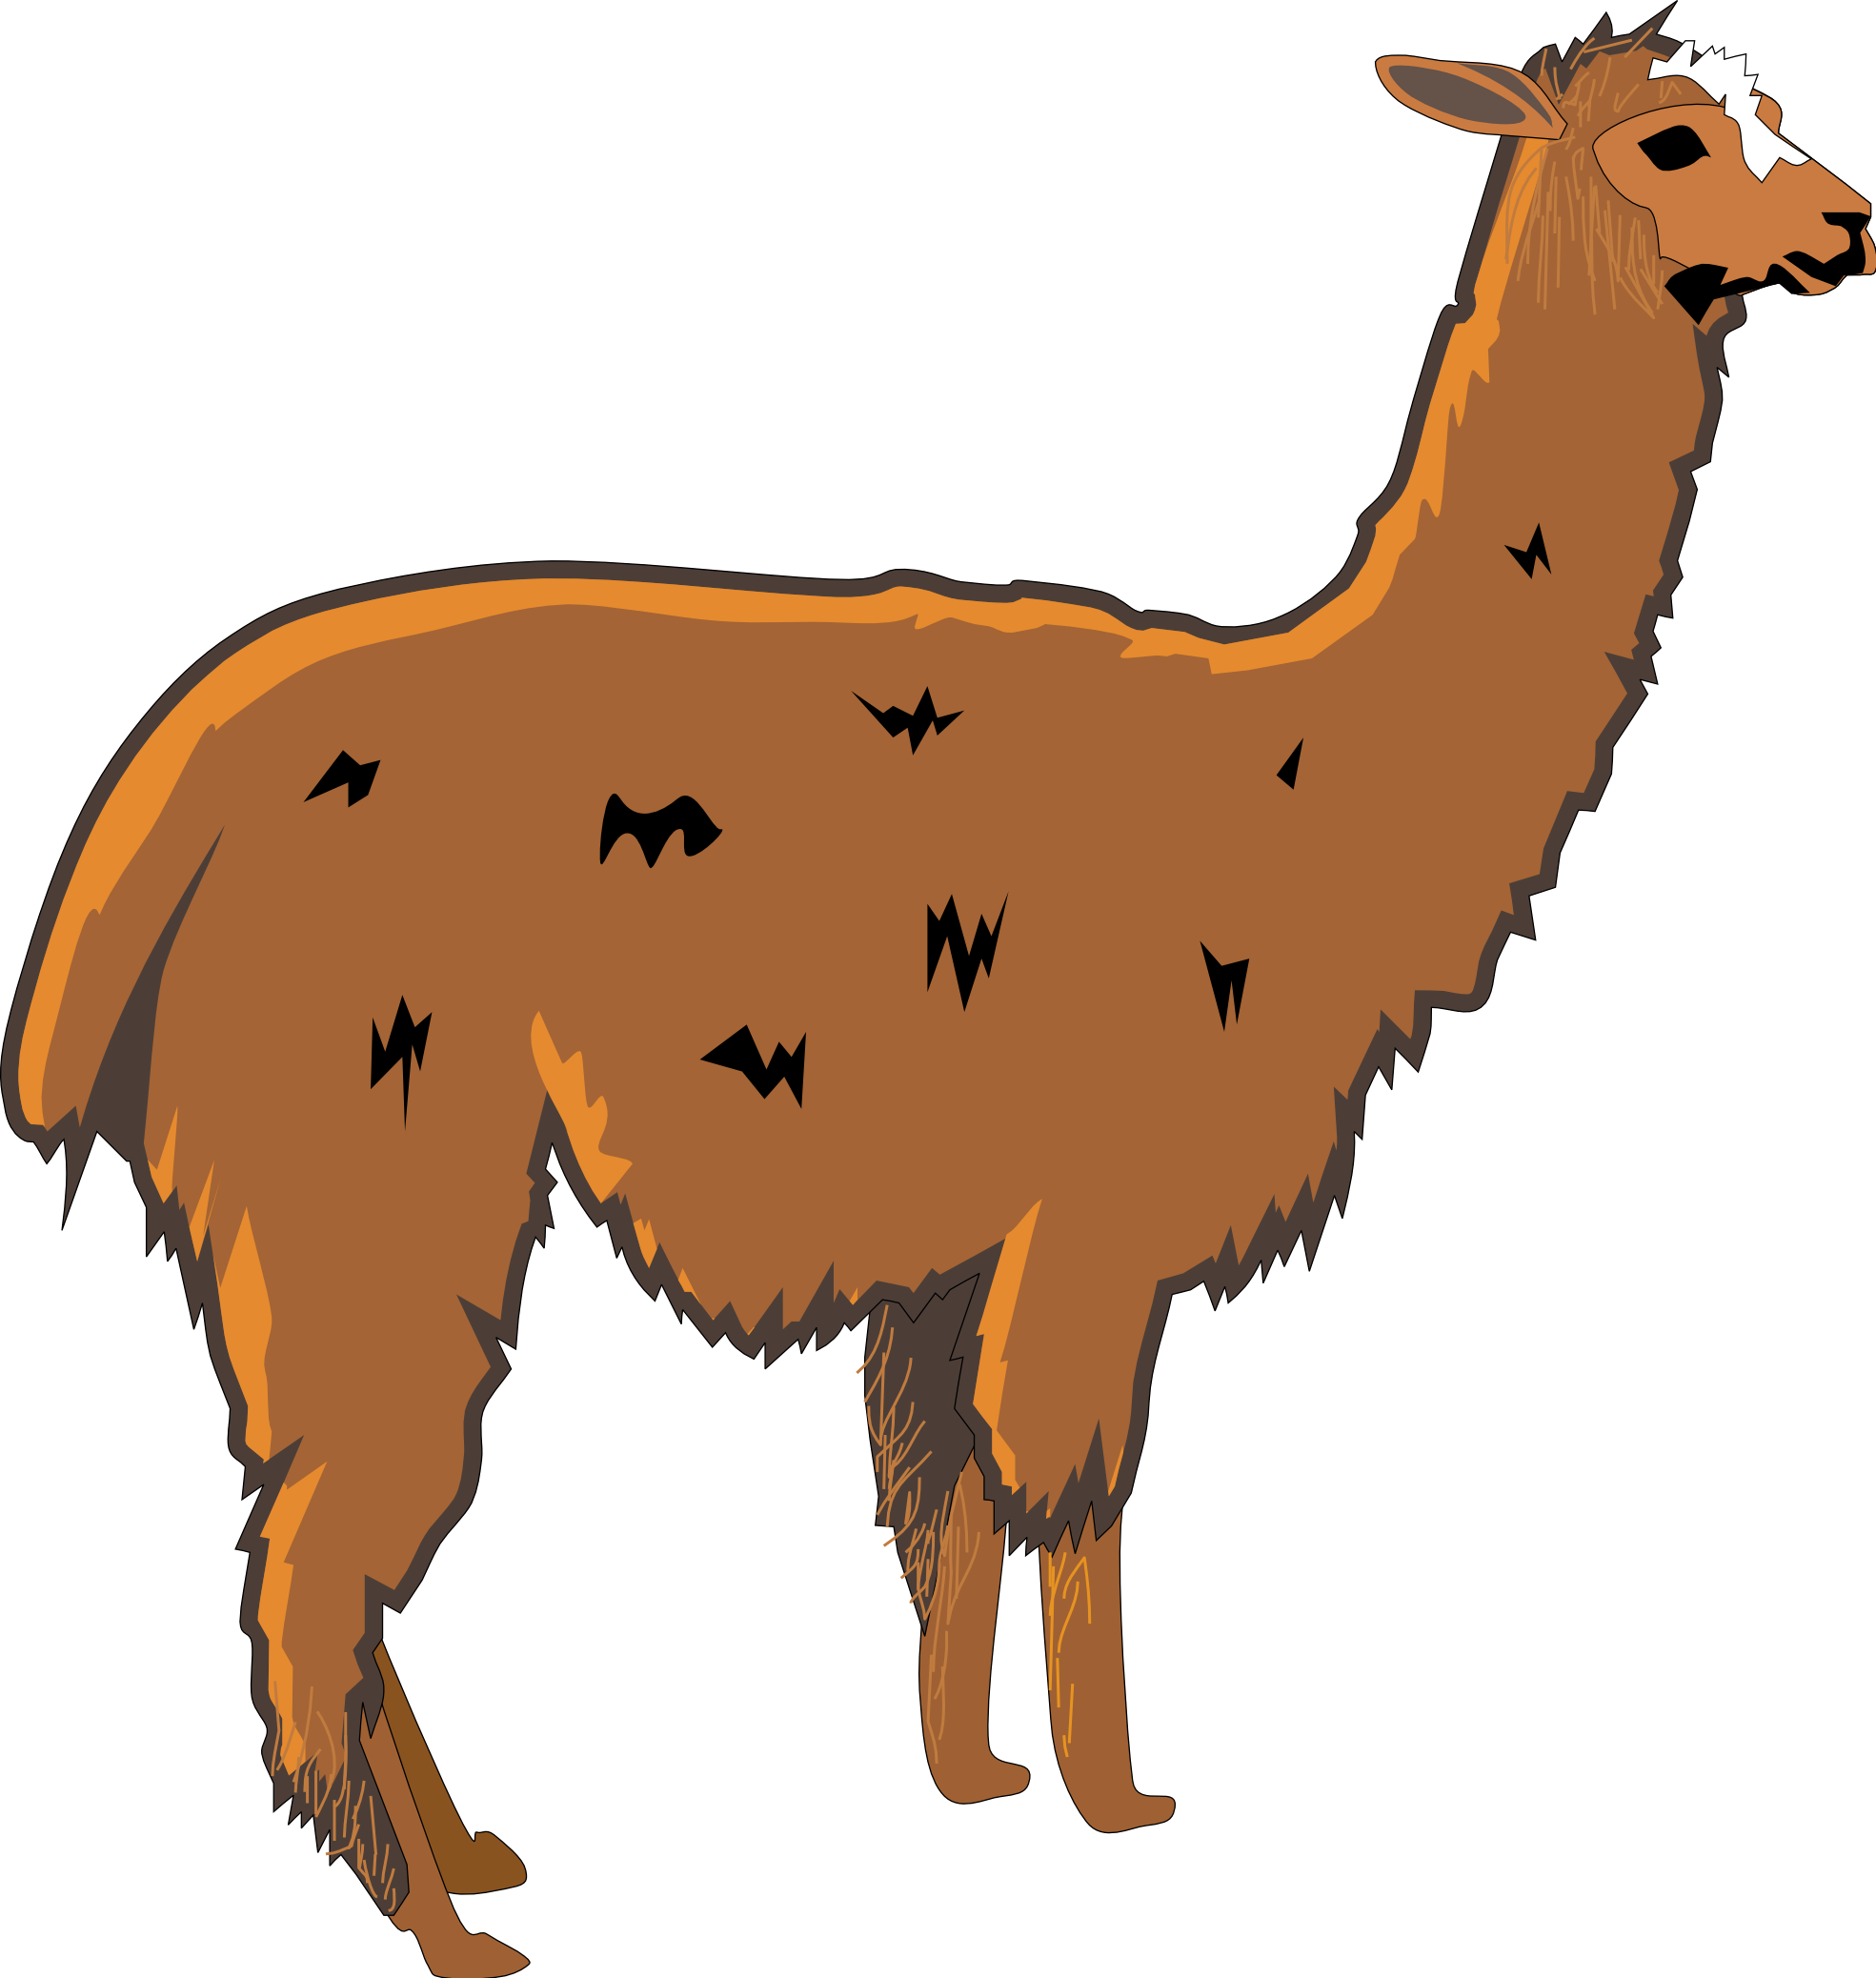 graphic freeuse library Llama clipart black and white. Alpaca panda free images.